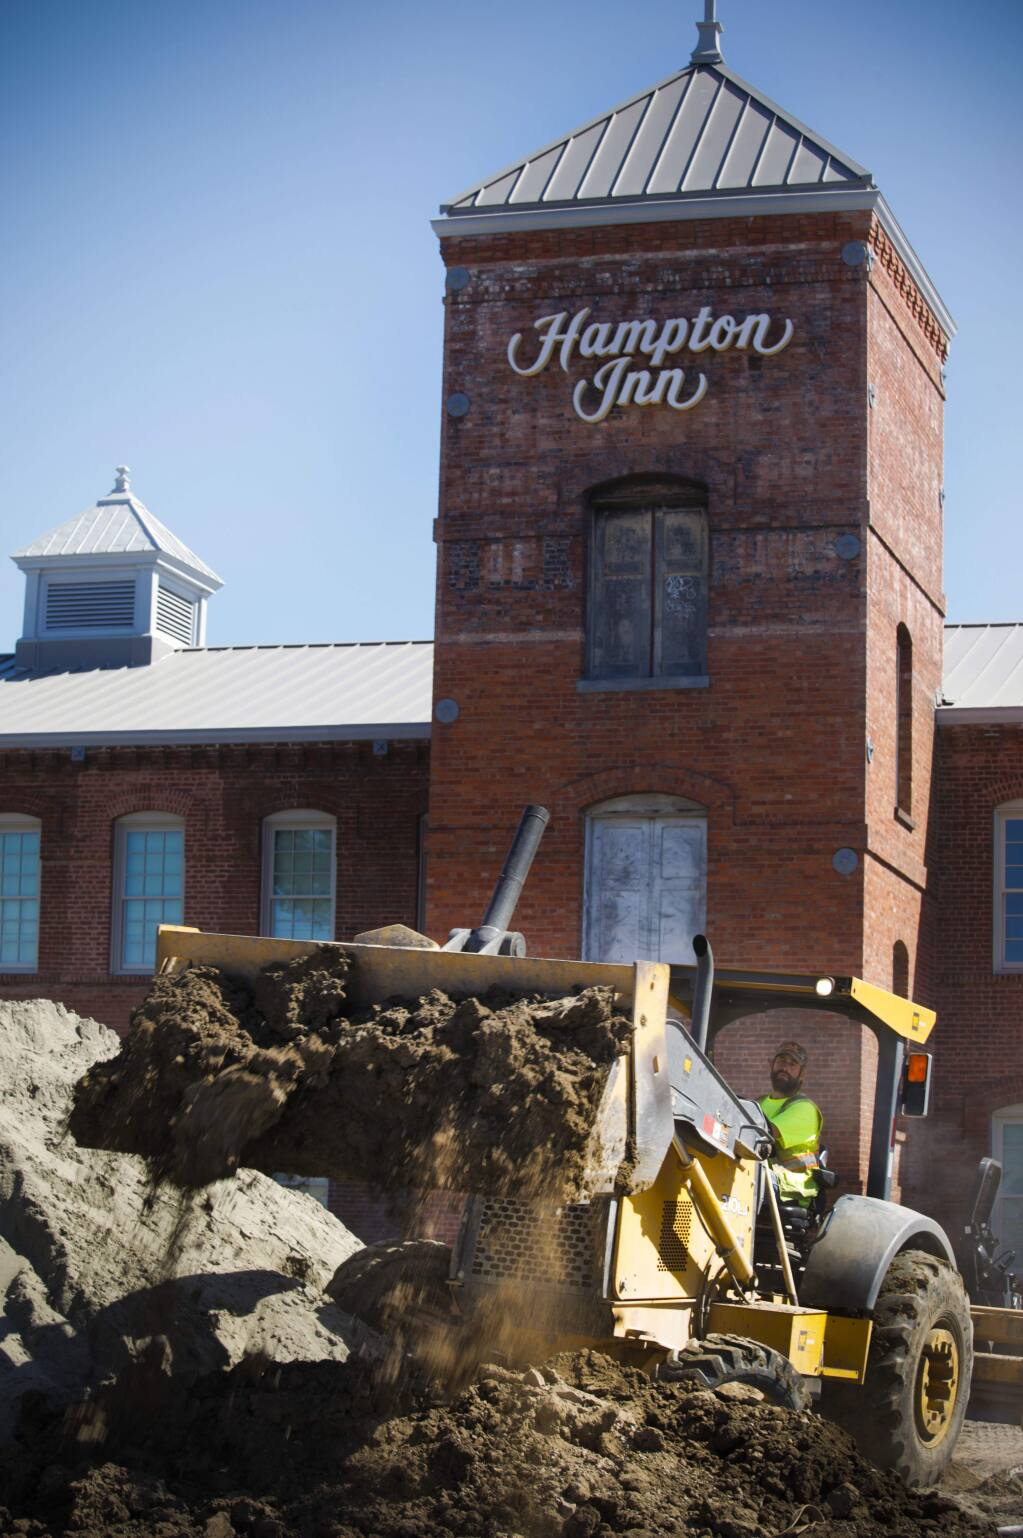 Work continues at the former Silk Mill on Lakeville where a new Hampton Inn is scheduled to open in June(CRISSY PASCUAL/ARGUS-COURIER STAFF)